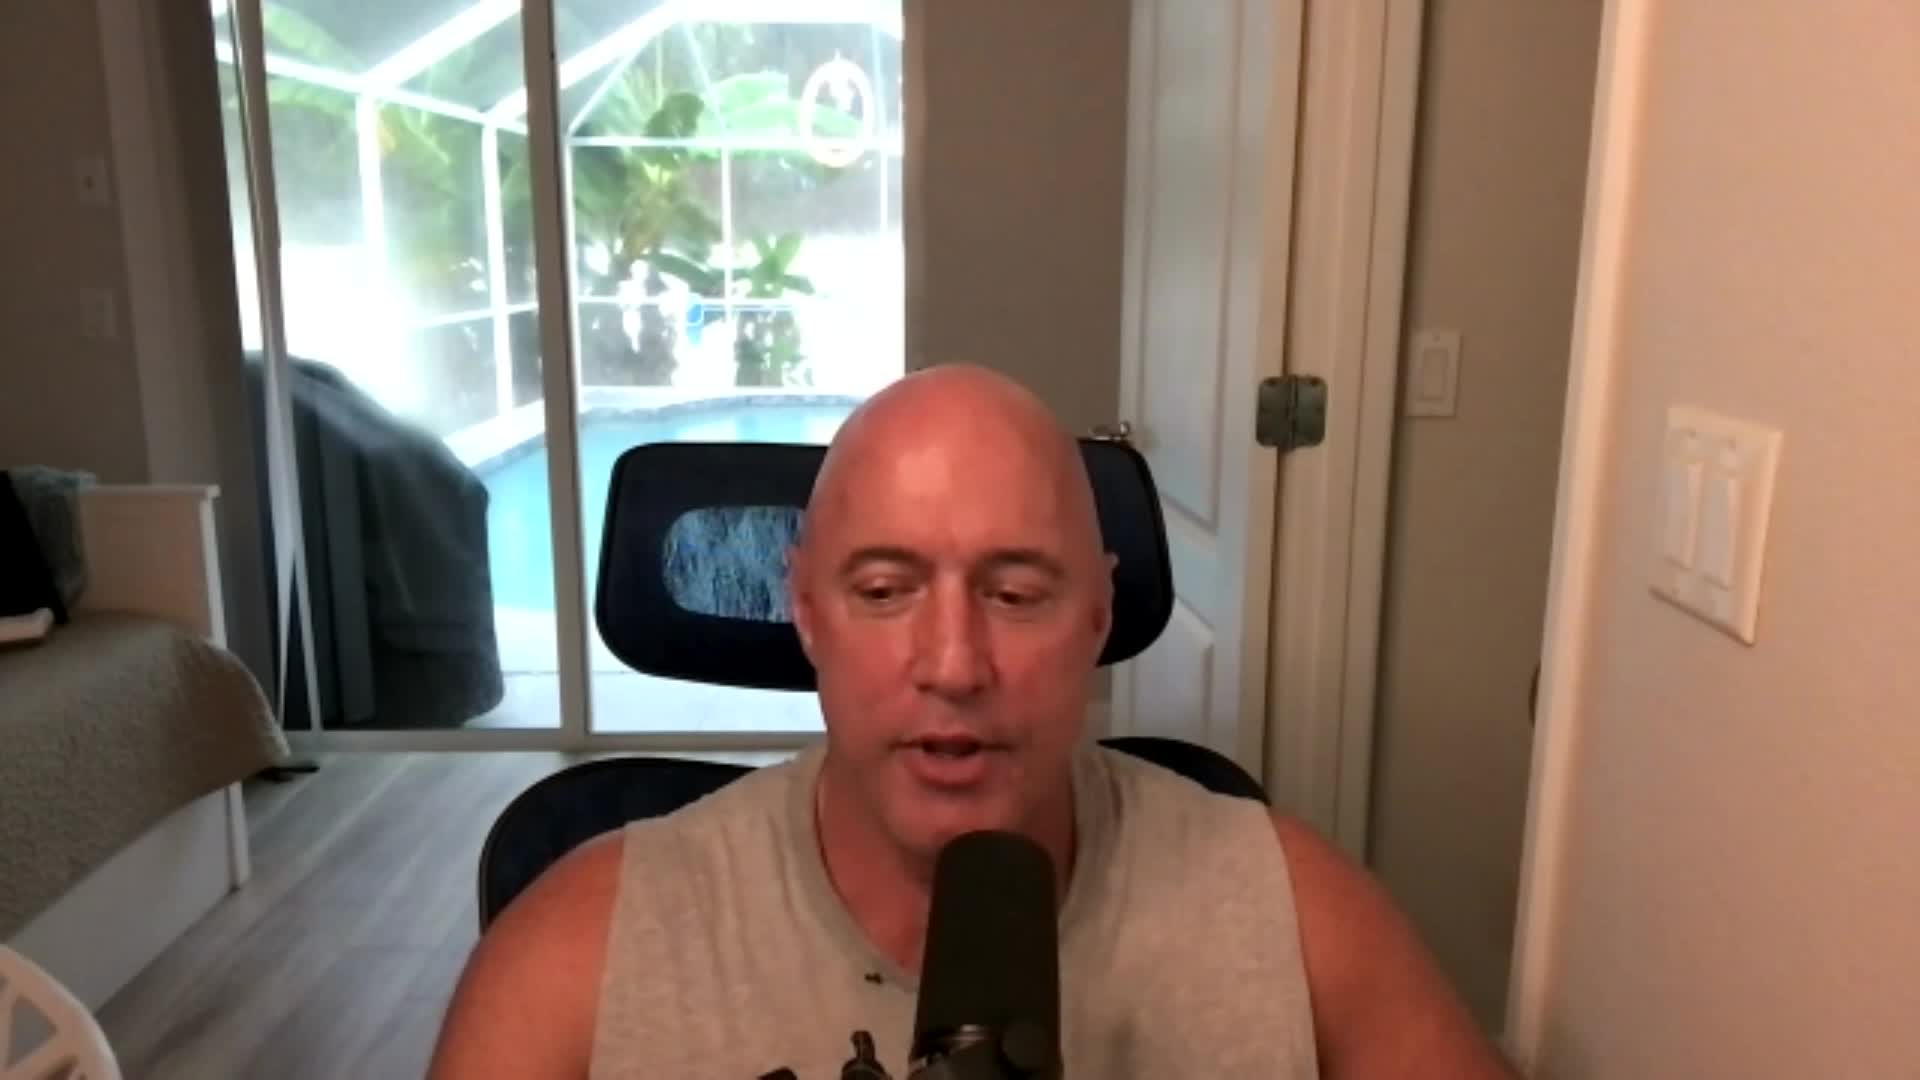 Former Navy Seal/CIA Michael Jaco: The Movie Is Reaching a New Level Where Everyone Needs to Be Involved! - Must Video